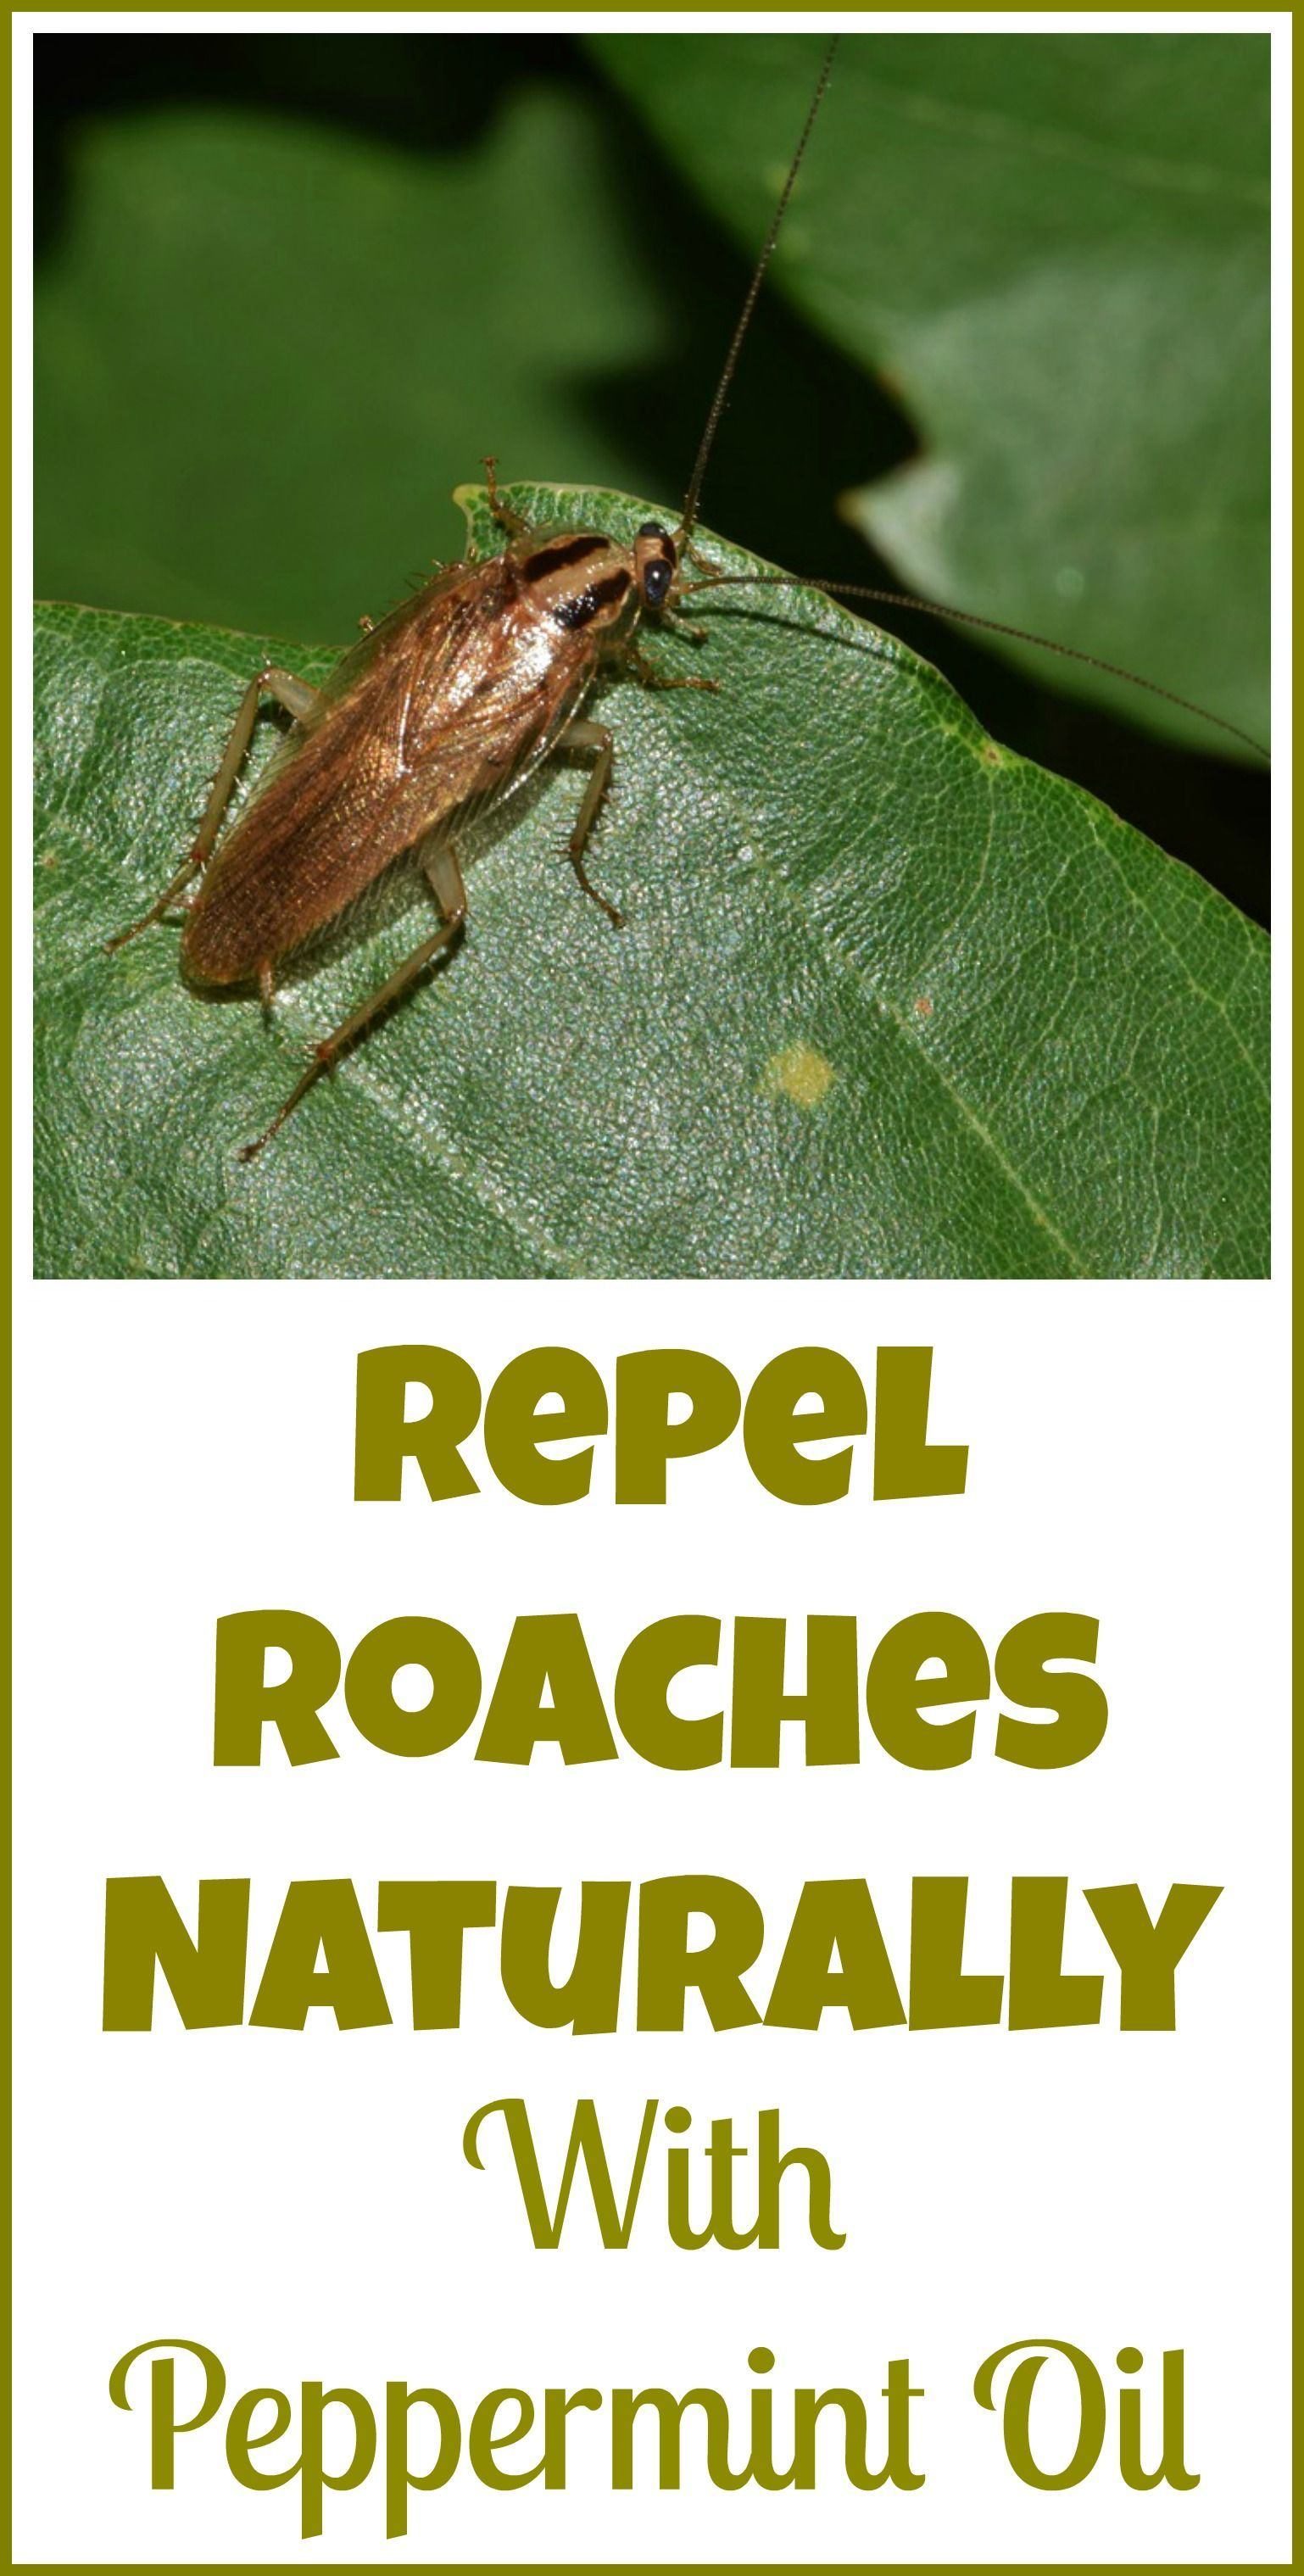 Peppermint Oil For Roaches Organic Palace Queen Essential Oils Roaches Peppermint Essential Oil Essential Oils